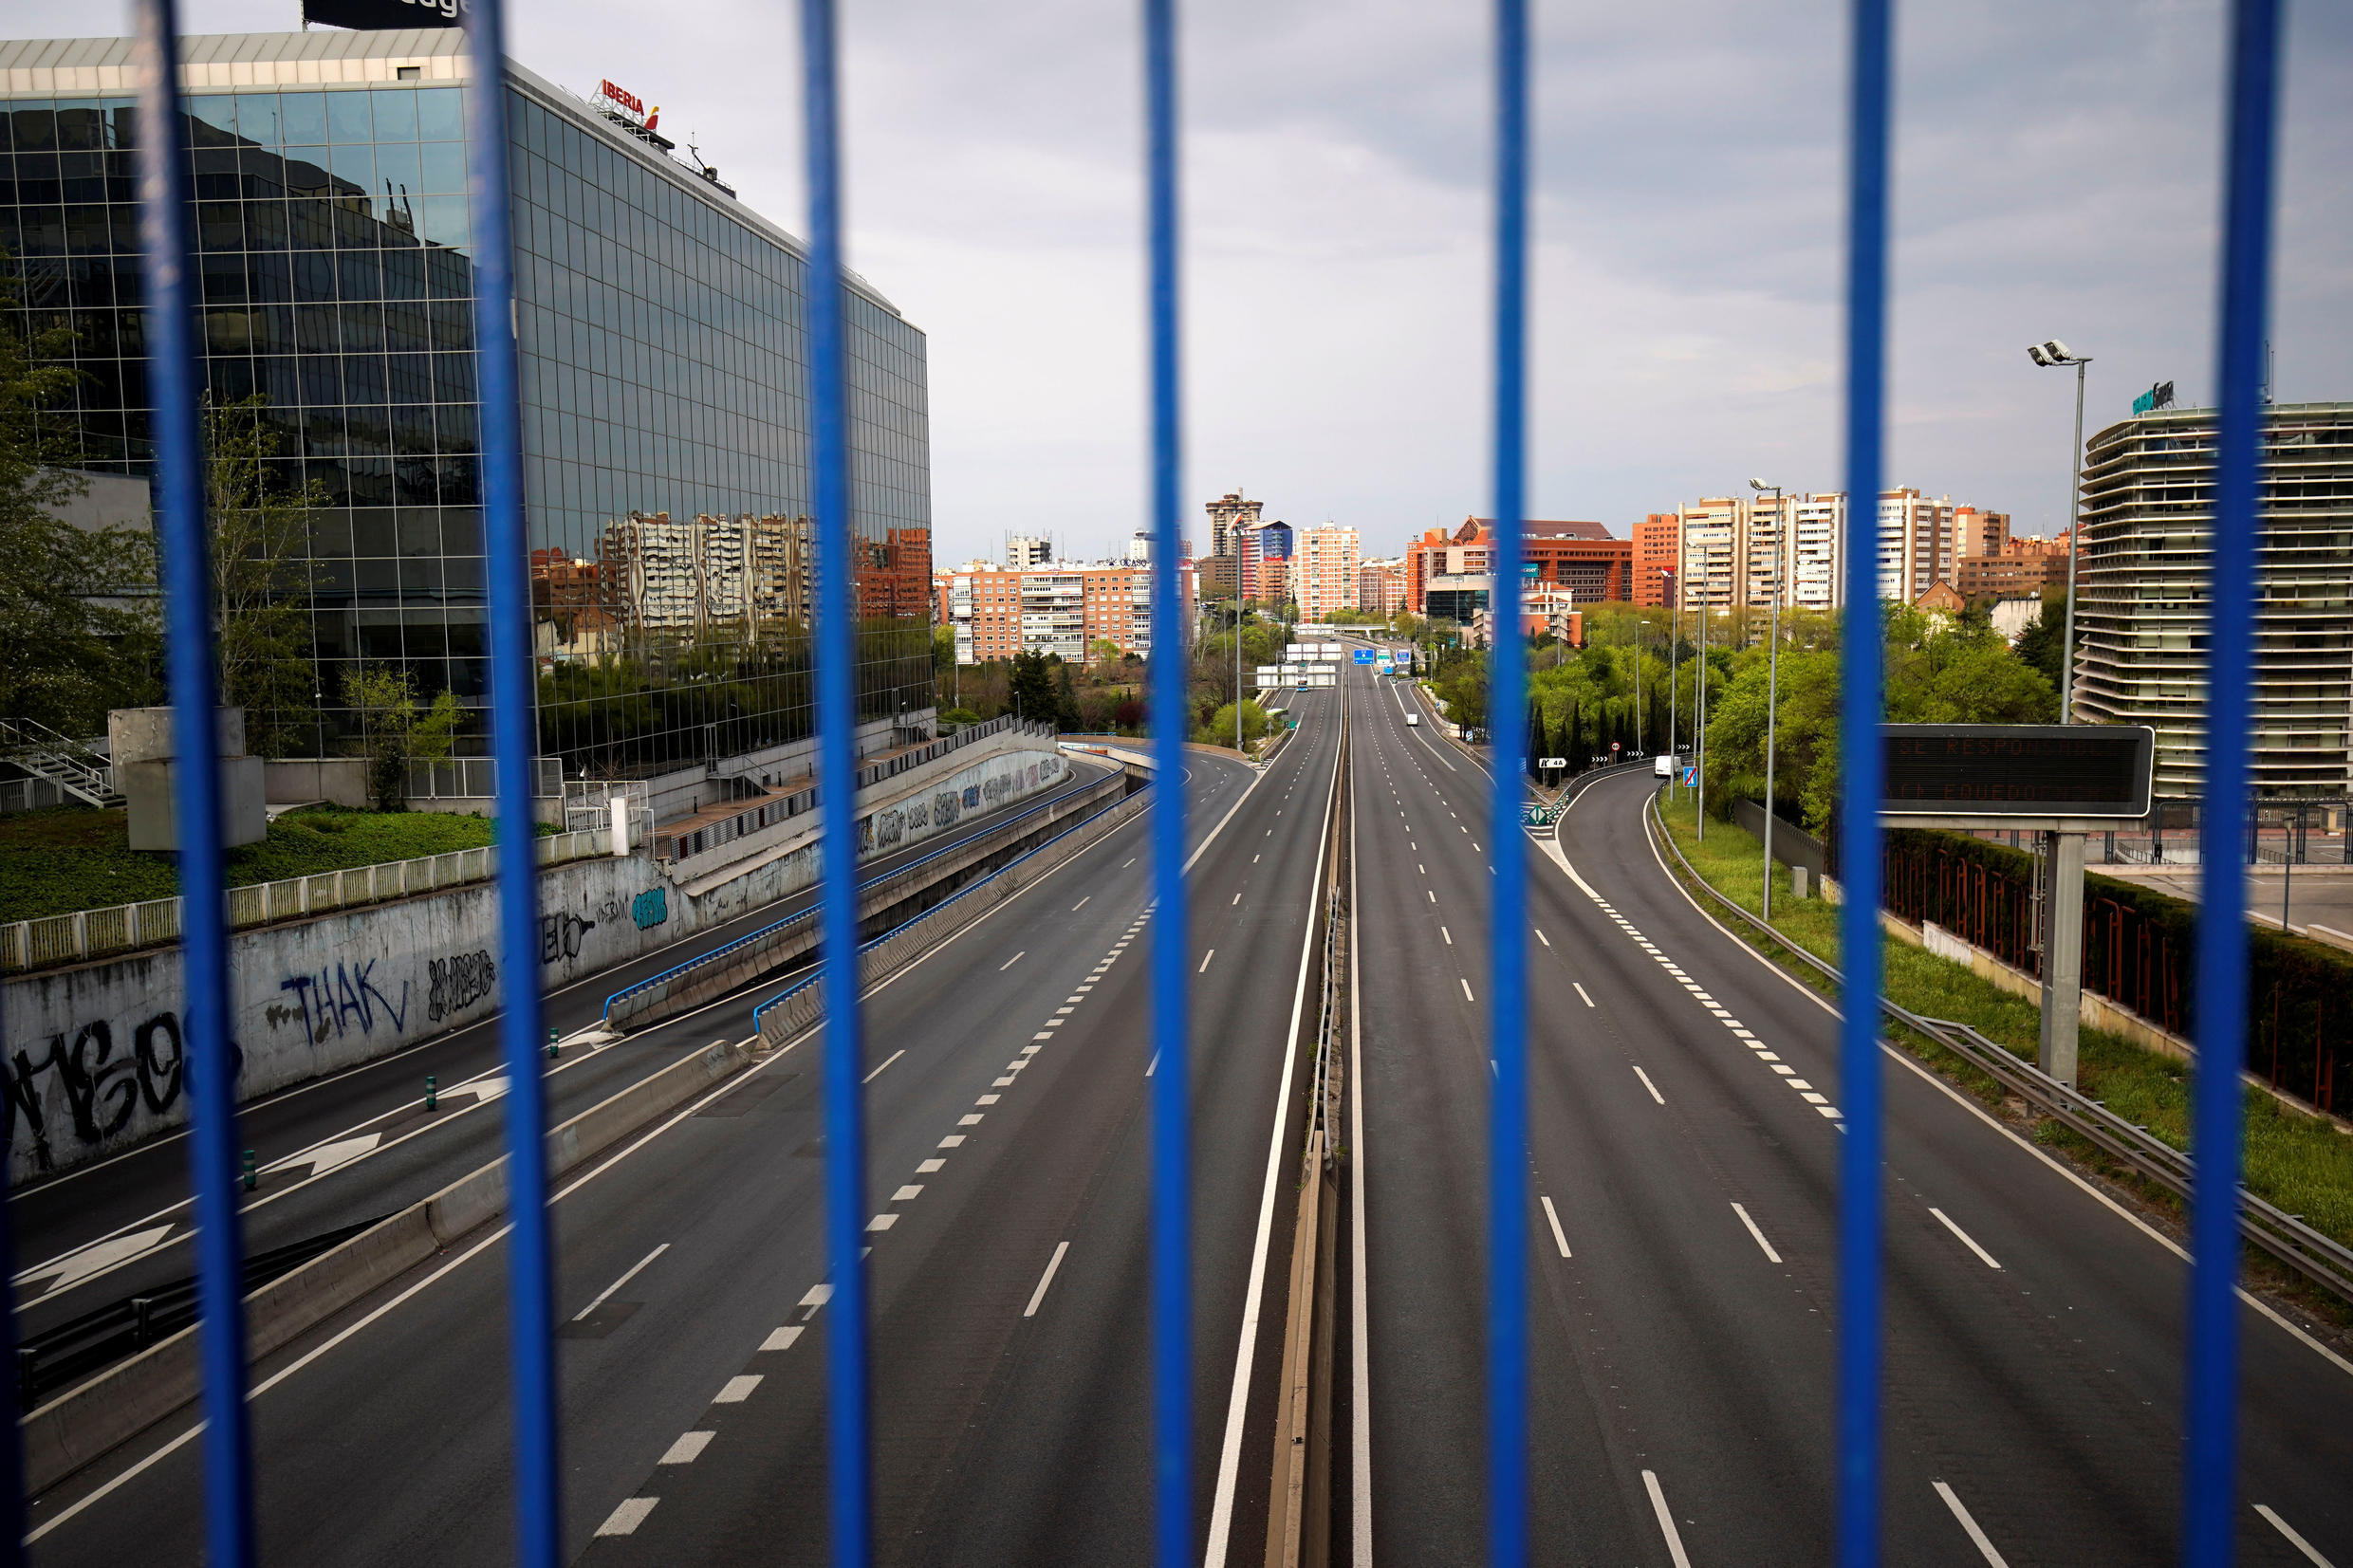 The A2 motorway is seen almost empty during the coronavirus lockdown in Madrid, Spain, March 30, 2020.